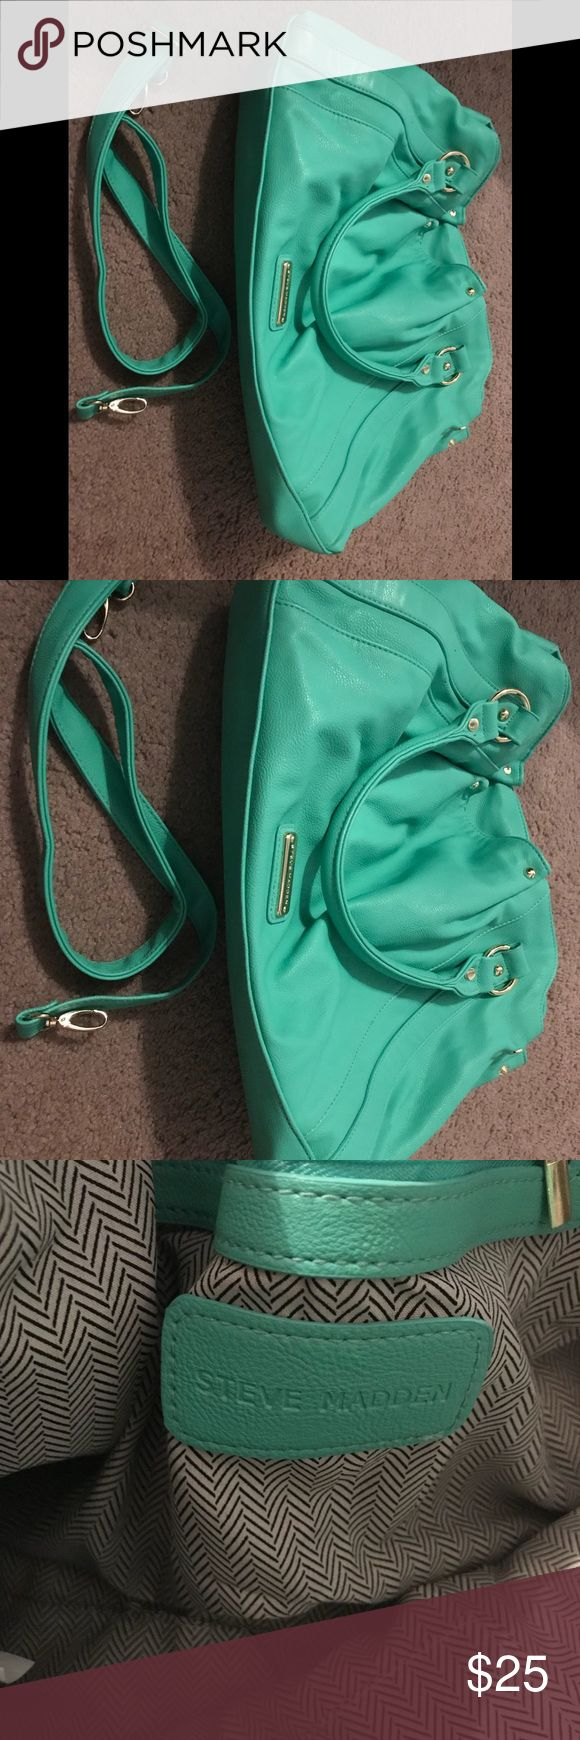 Steve madden purse Like new worn one time very cute Steve Madden Bags Shoulder Bags